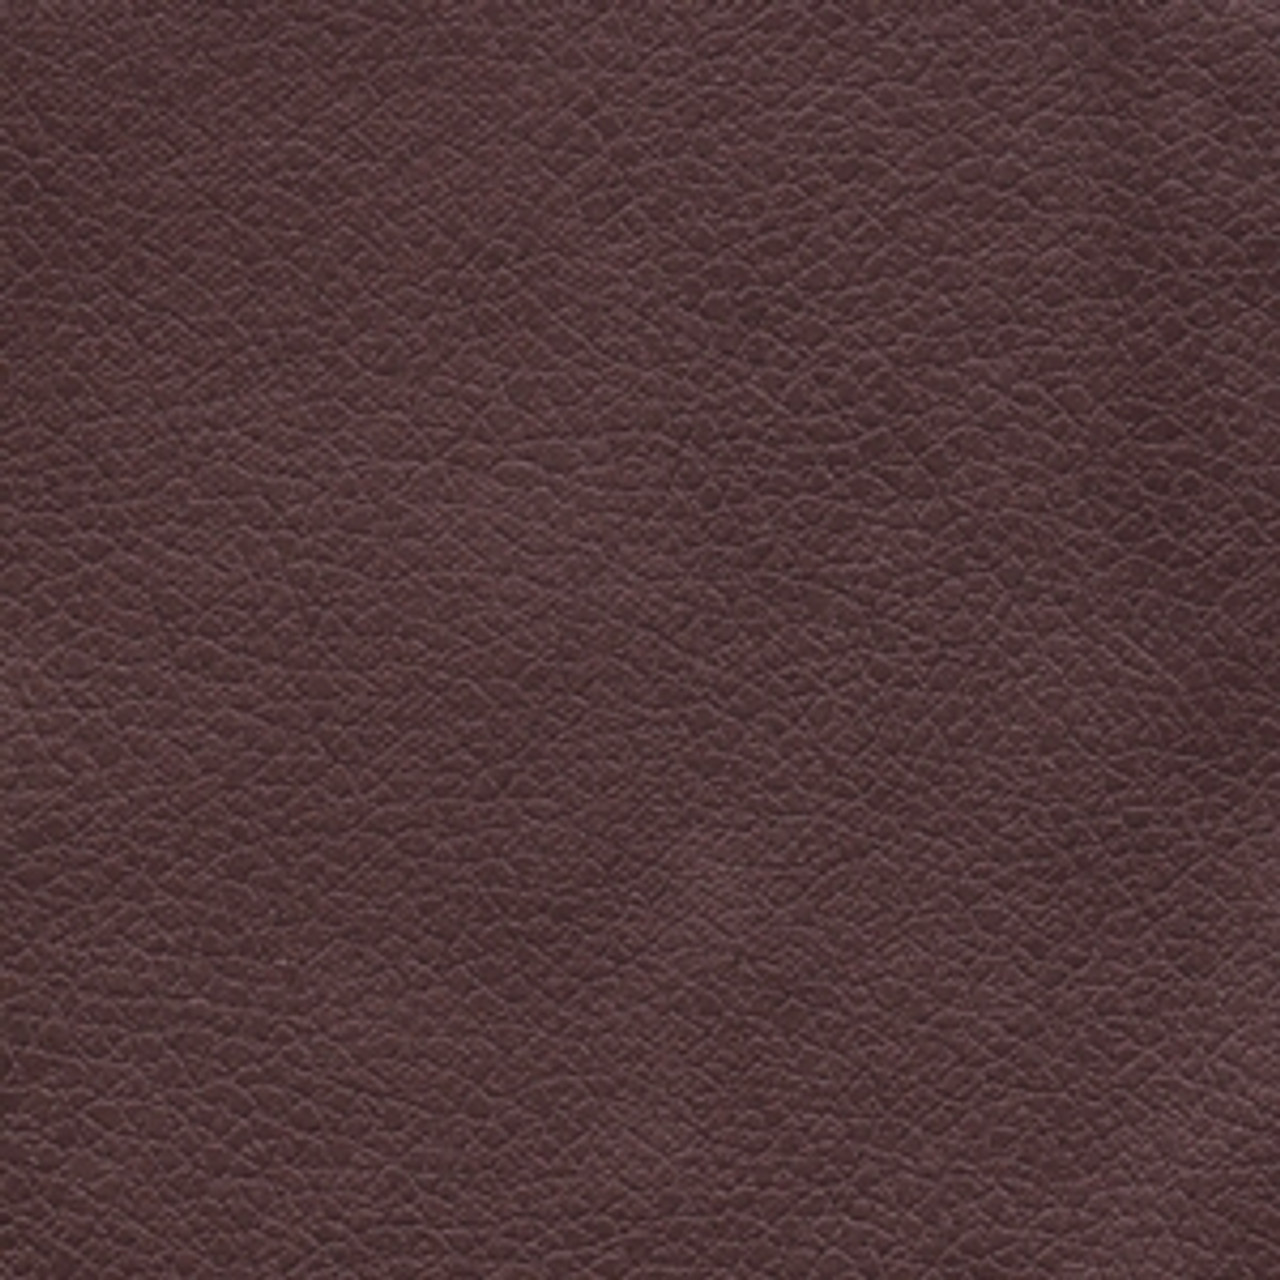 Coffee Bean Faux Leather